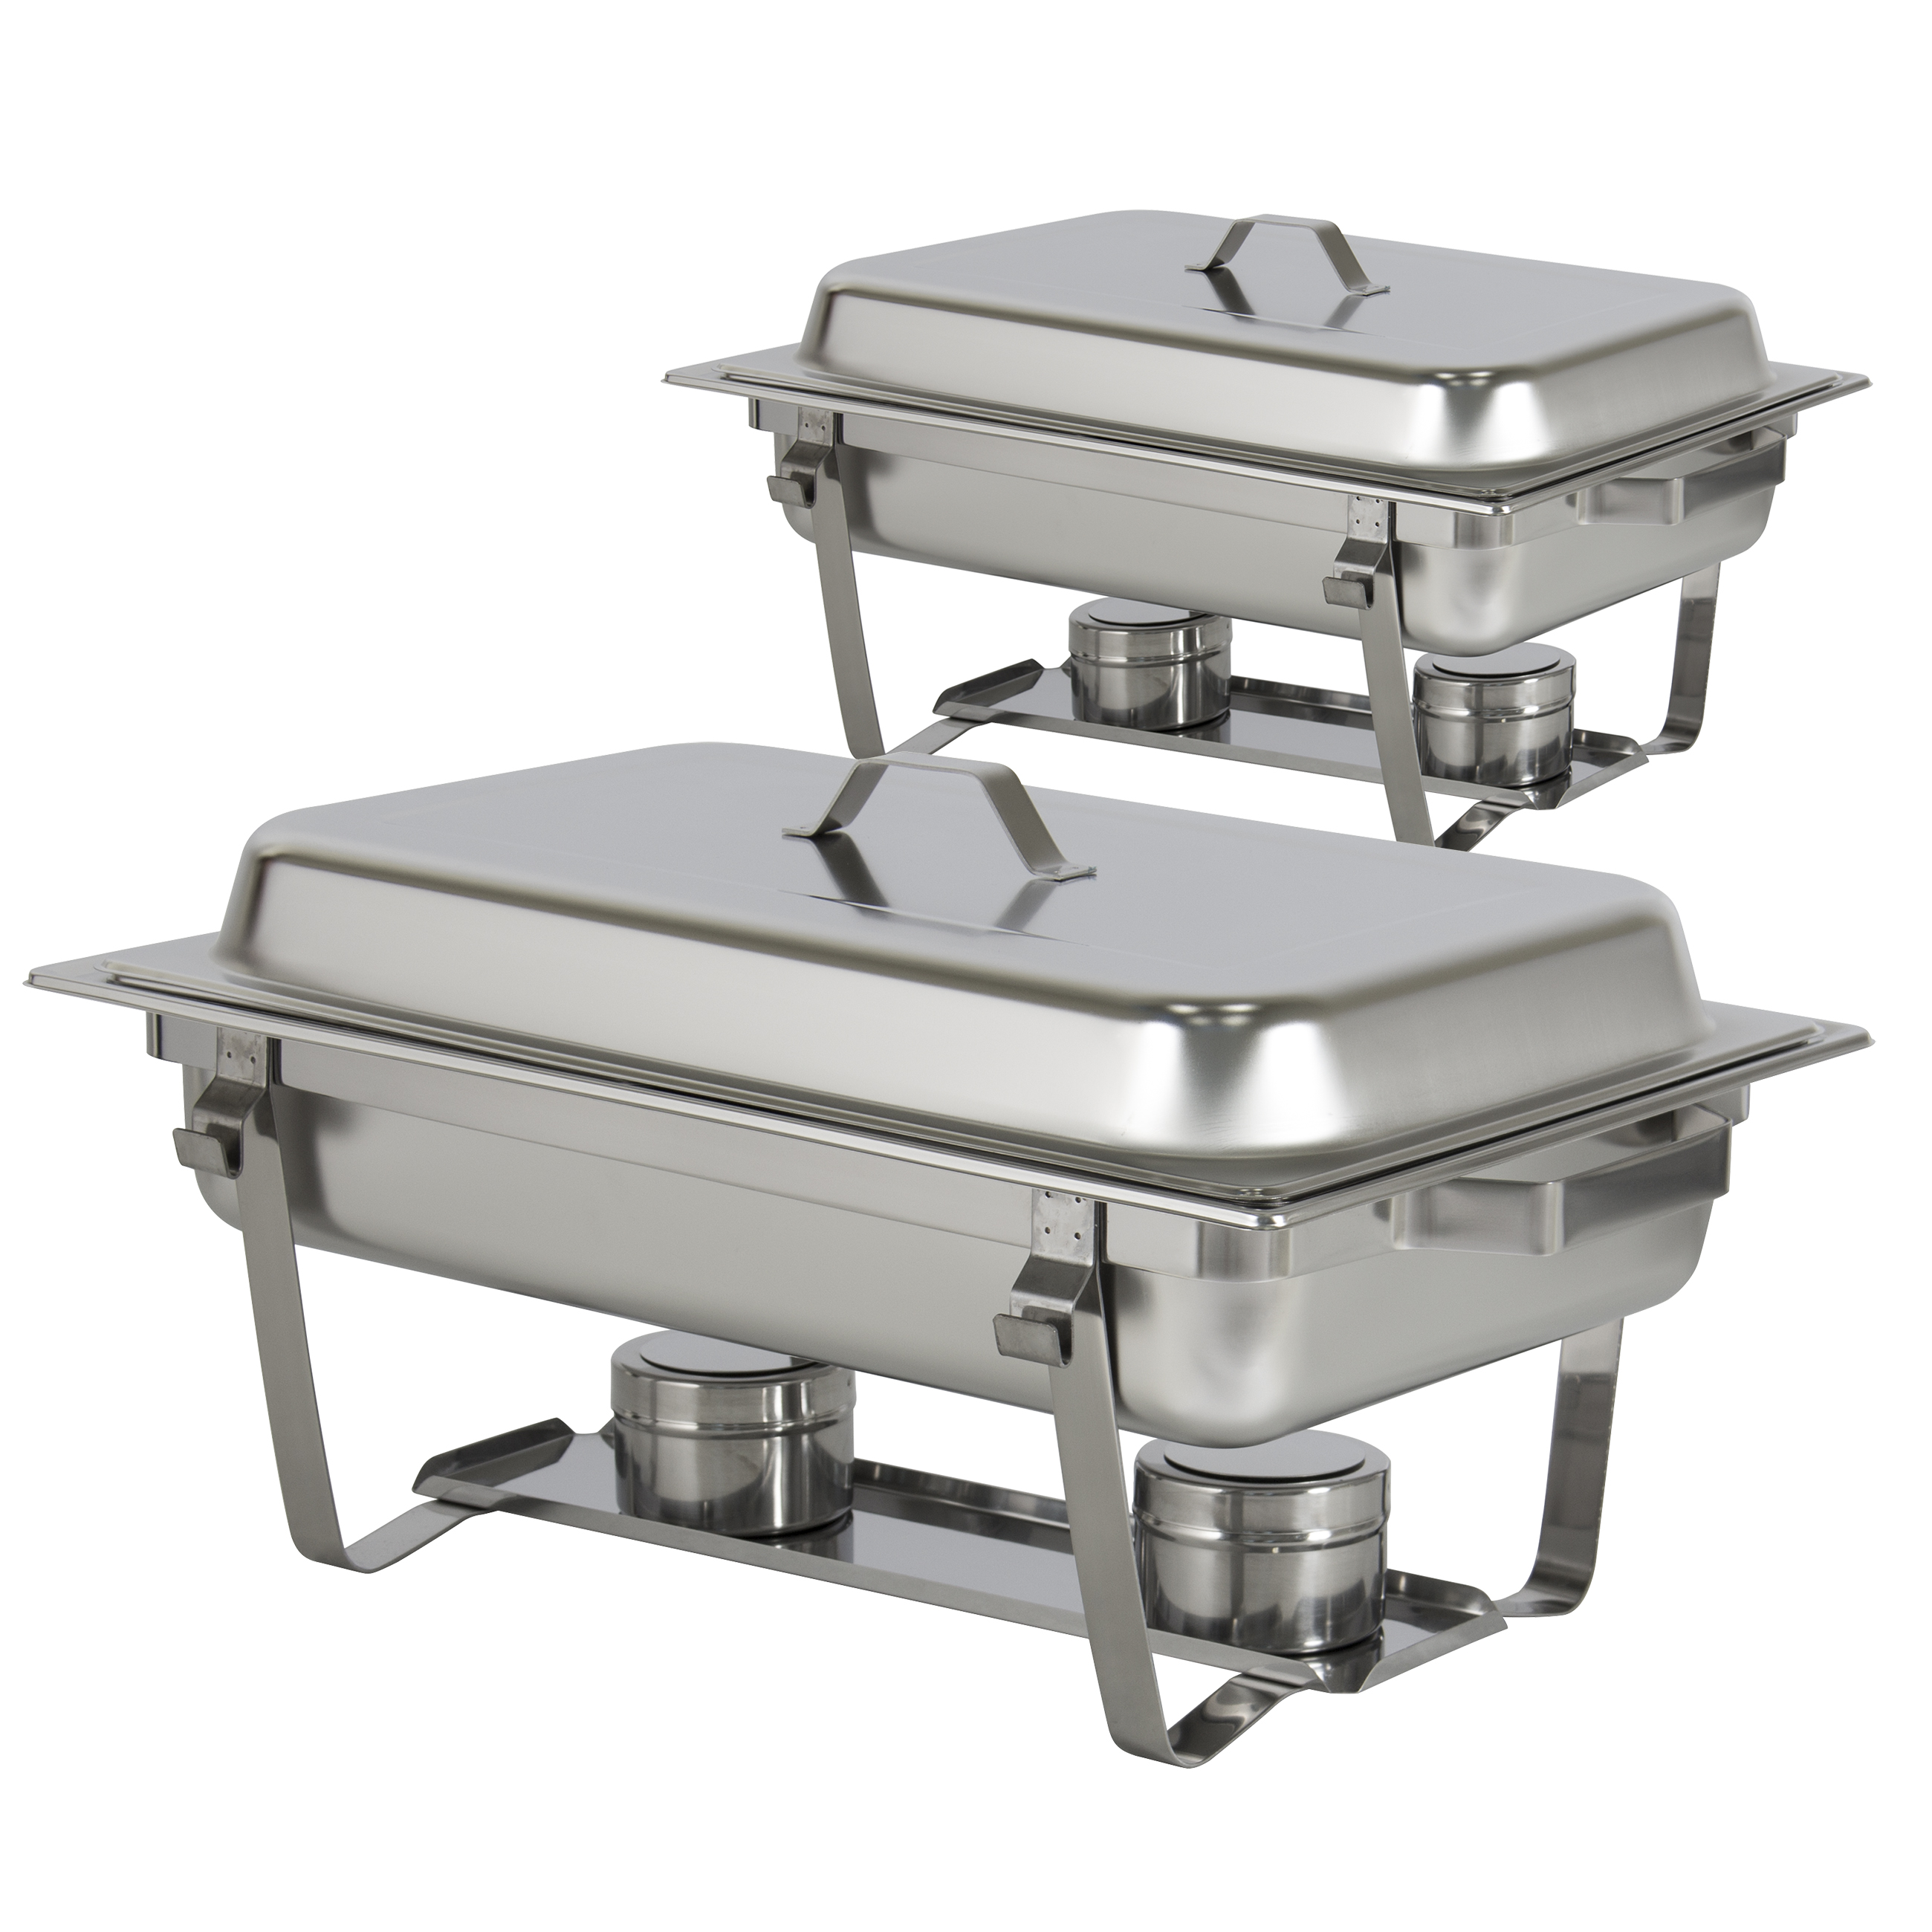 best choice products chafing dish set of 2 8 quart stainless steel rh walmart com chafing dish buffet set canada chafing dish buffet set party city